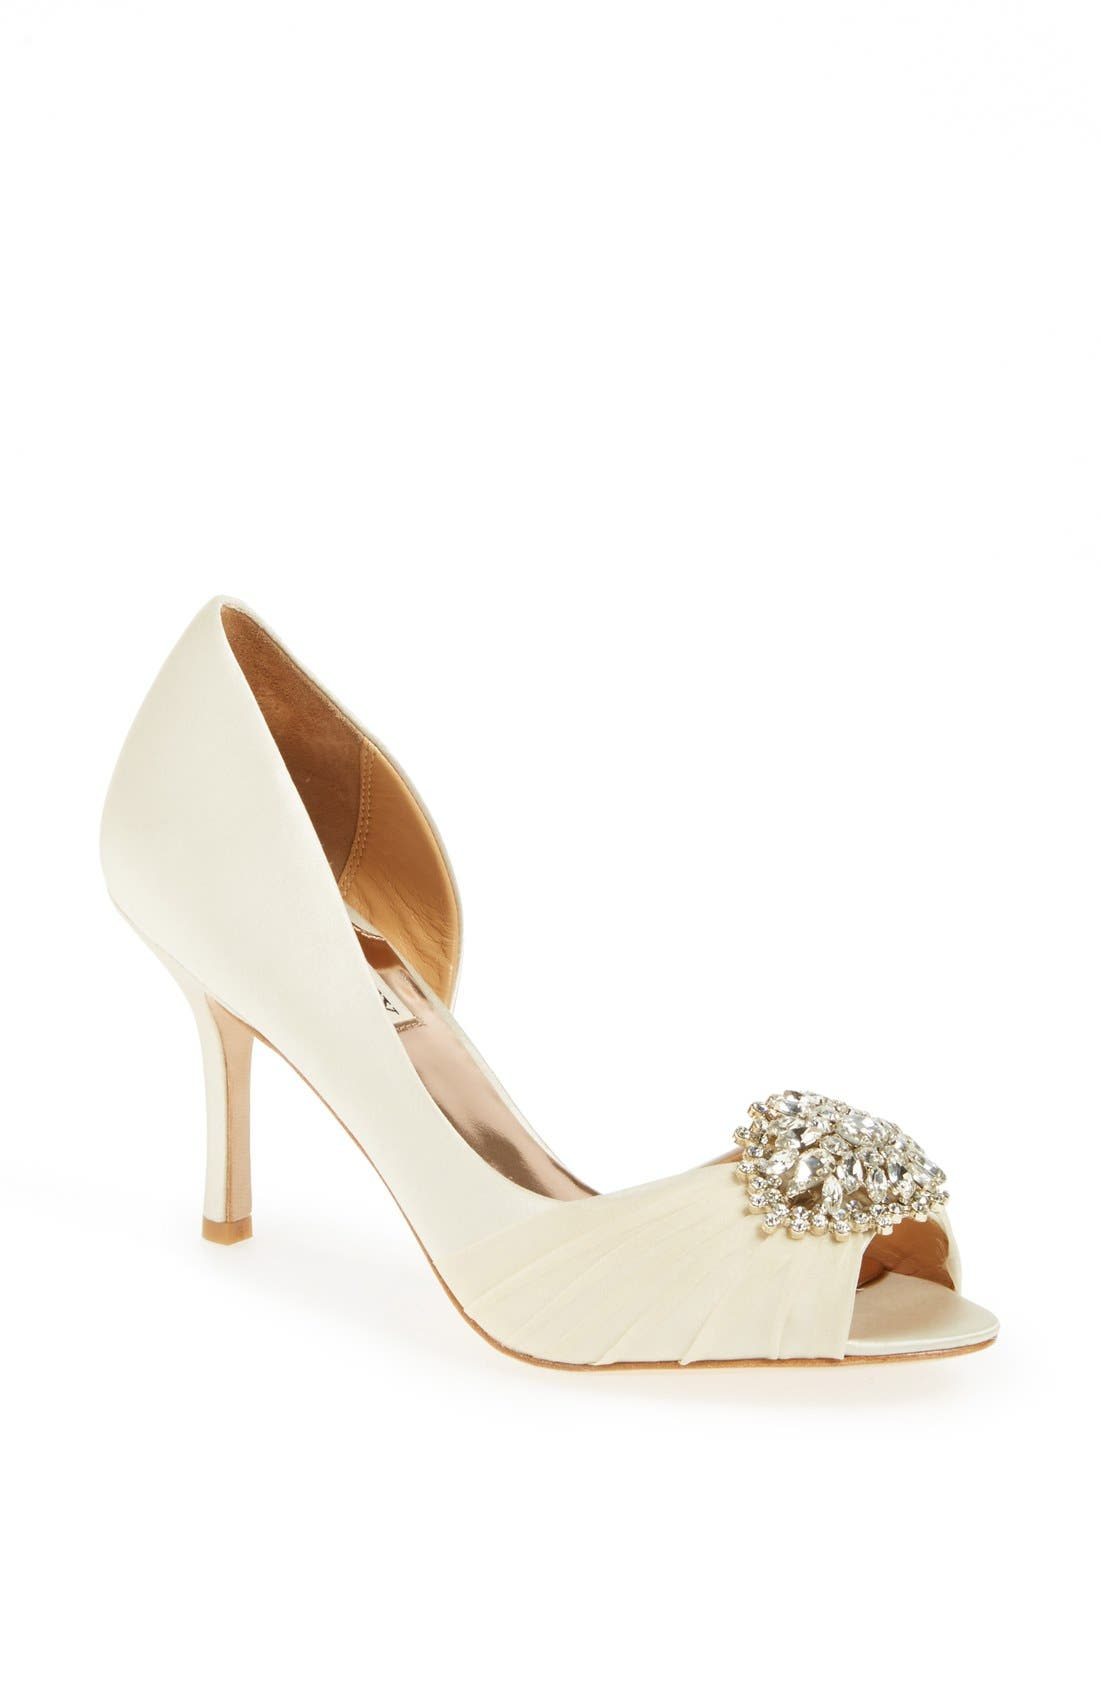 Alternate Image 1 Selected - Badgley Mischka 'Pearson' Pump